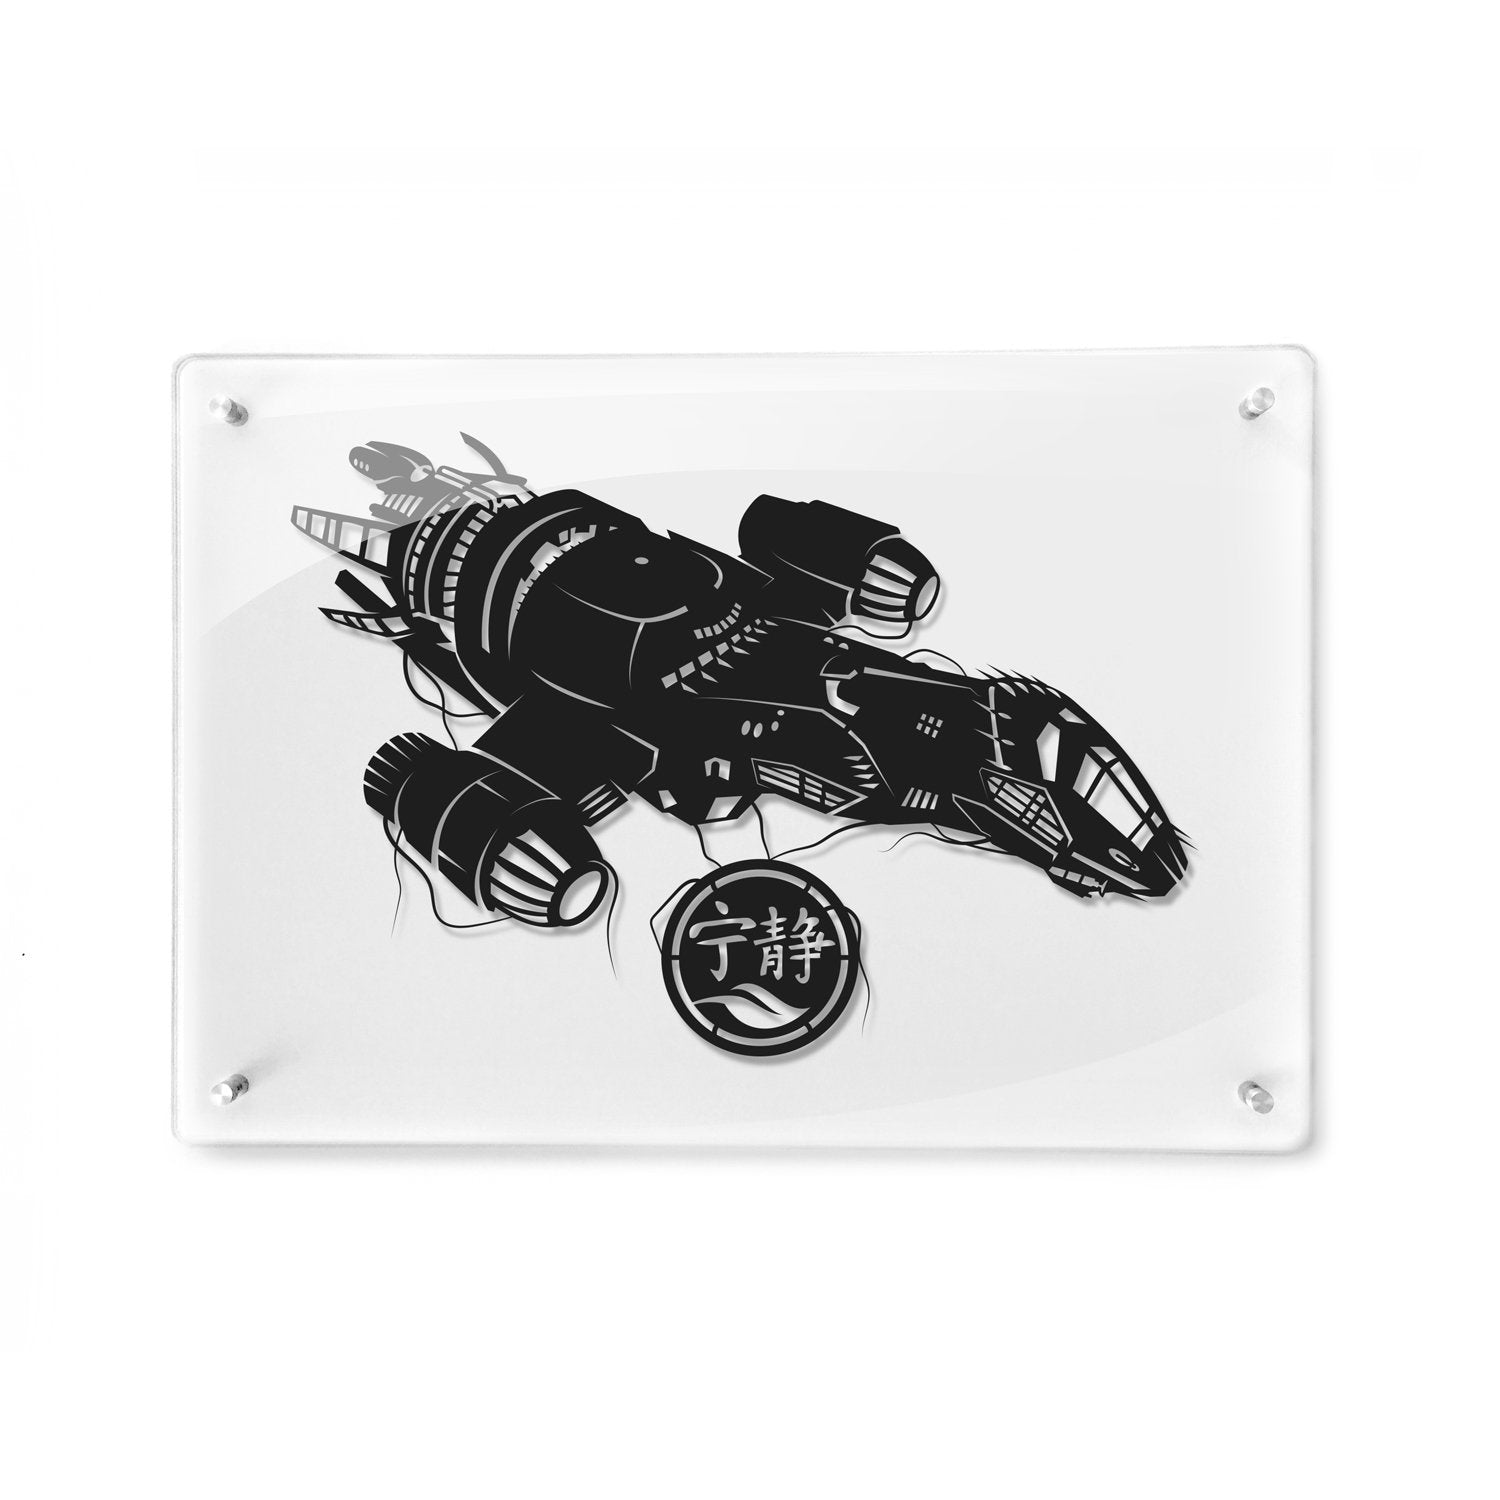 FRAMED Serenity Firefly Mal Wash Western brown coats spaceship scifi thief vehicle silhouette handcut paper craft